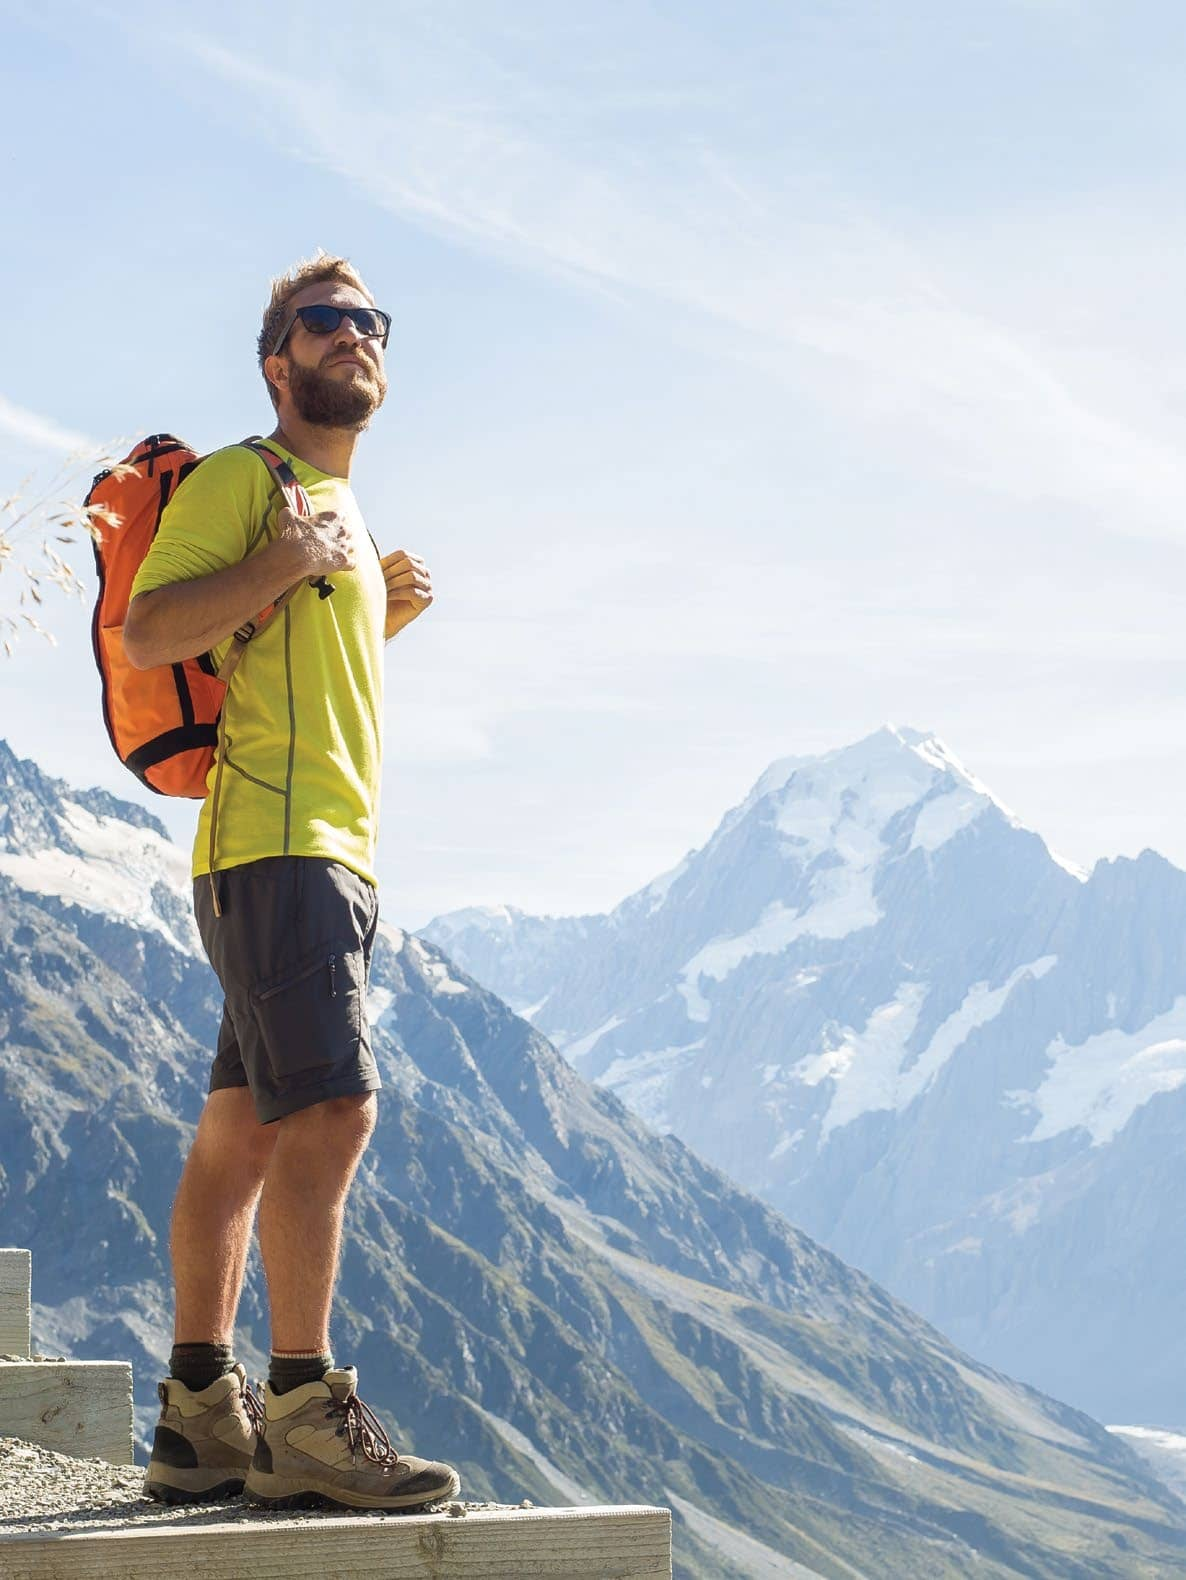 How To Go For Hiking When You Have Arthritis